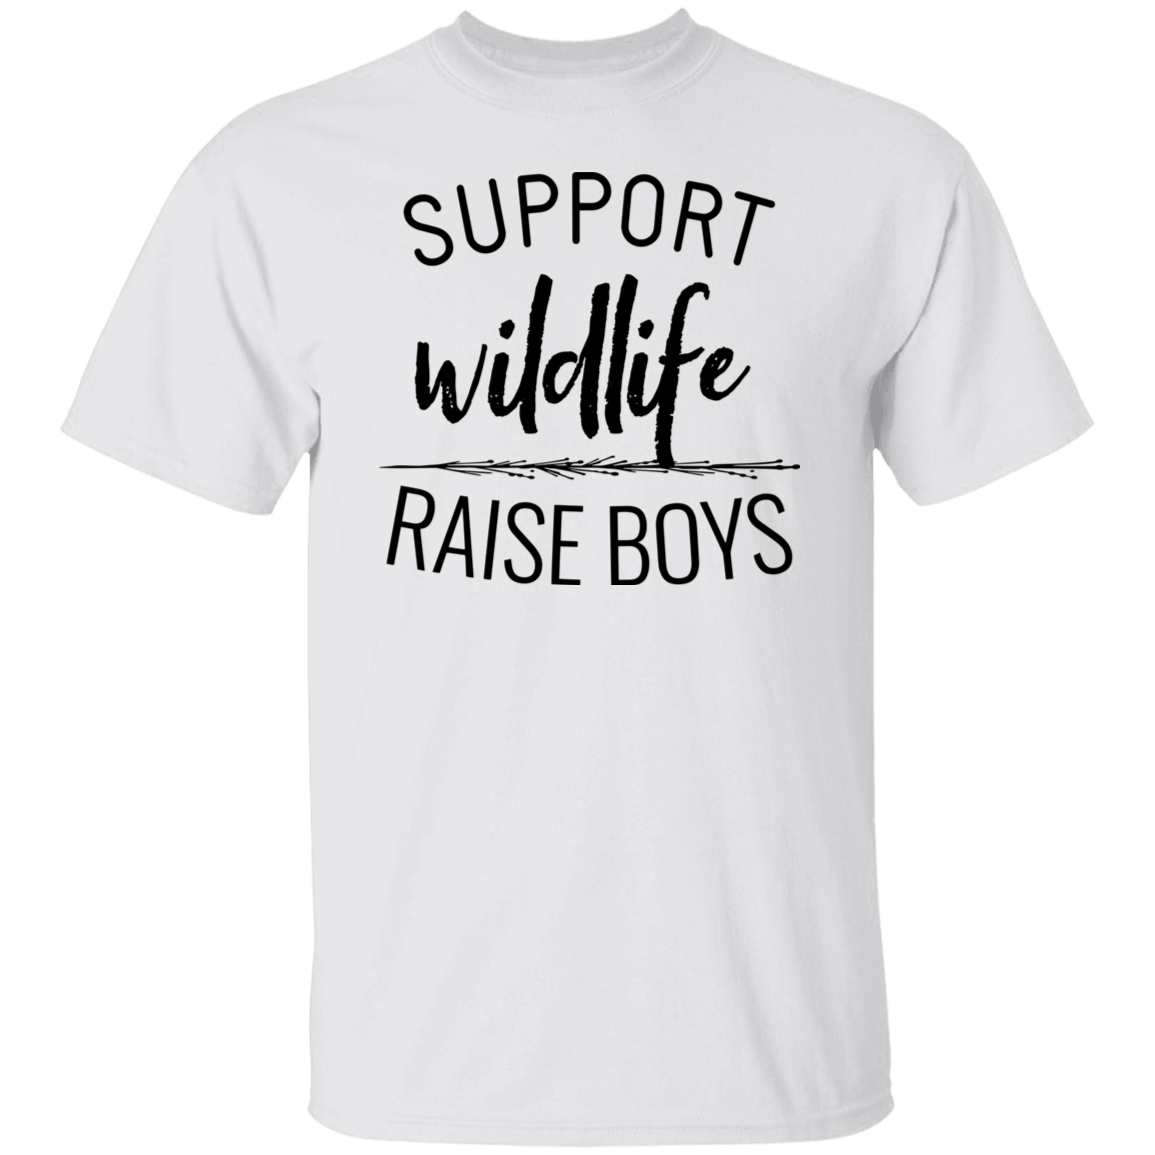 Support Wildlife Raise Boys Shirt, Raising Boys Shirt, Mother of Boys Gift, Mothers Day Gift, Mom Gift, Gift for Her, Mom Tee